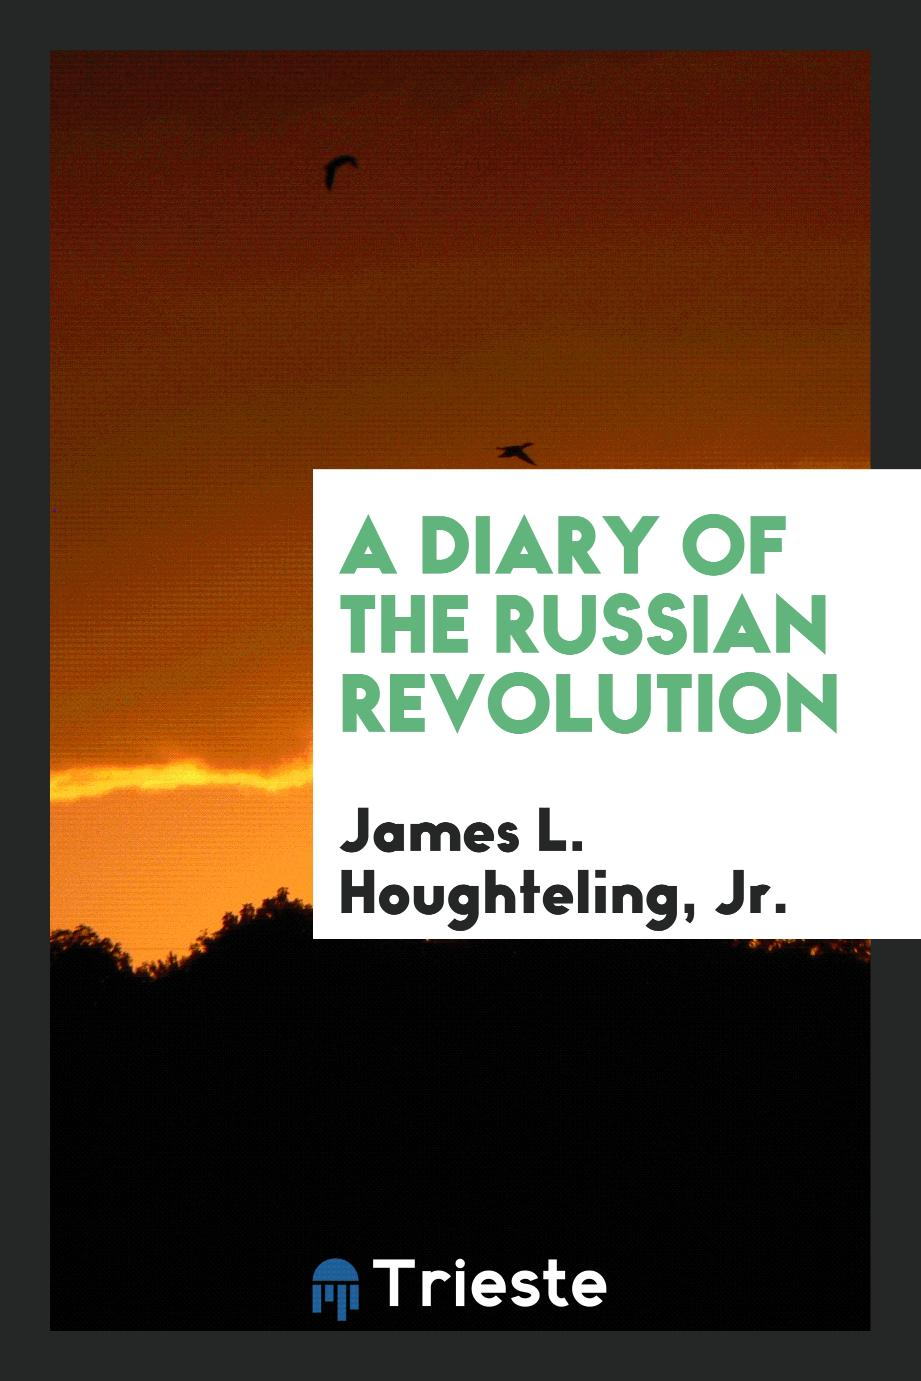 A Diary of the Russian Revolution